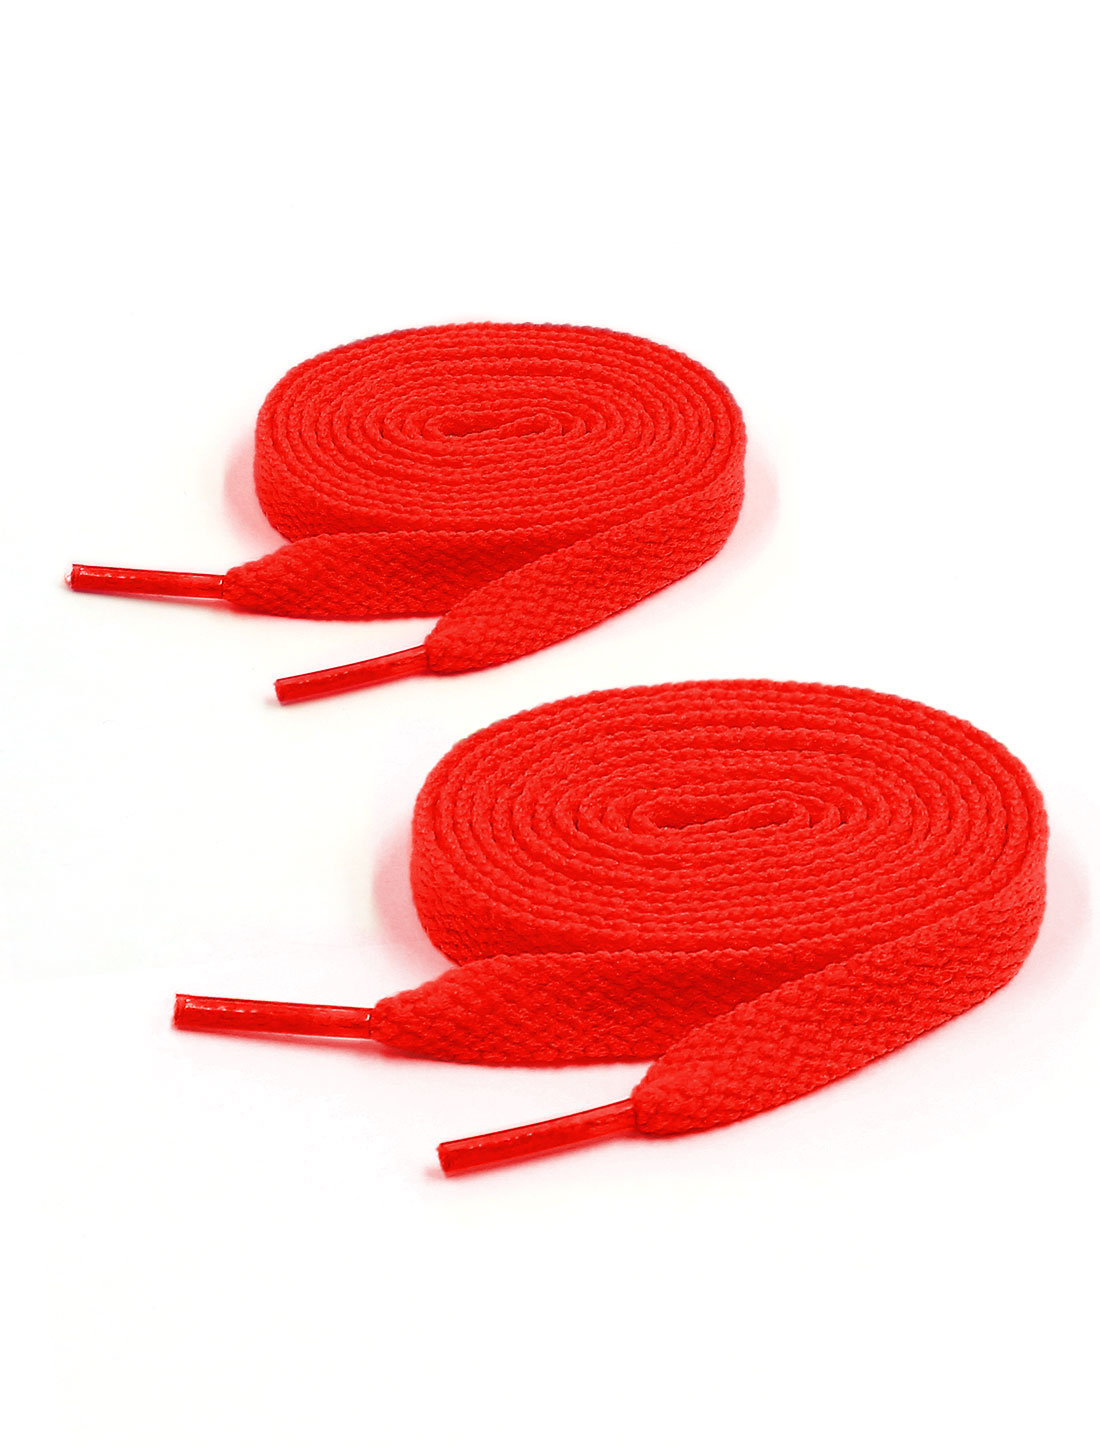 Unisex 123cm Length 2 Pairs Sneaker Flat Bootlaces Shoelaces Strings Laces Red